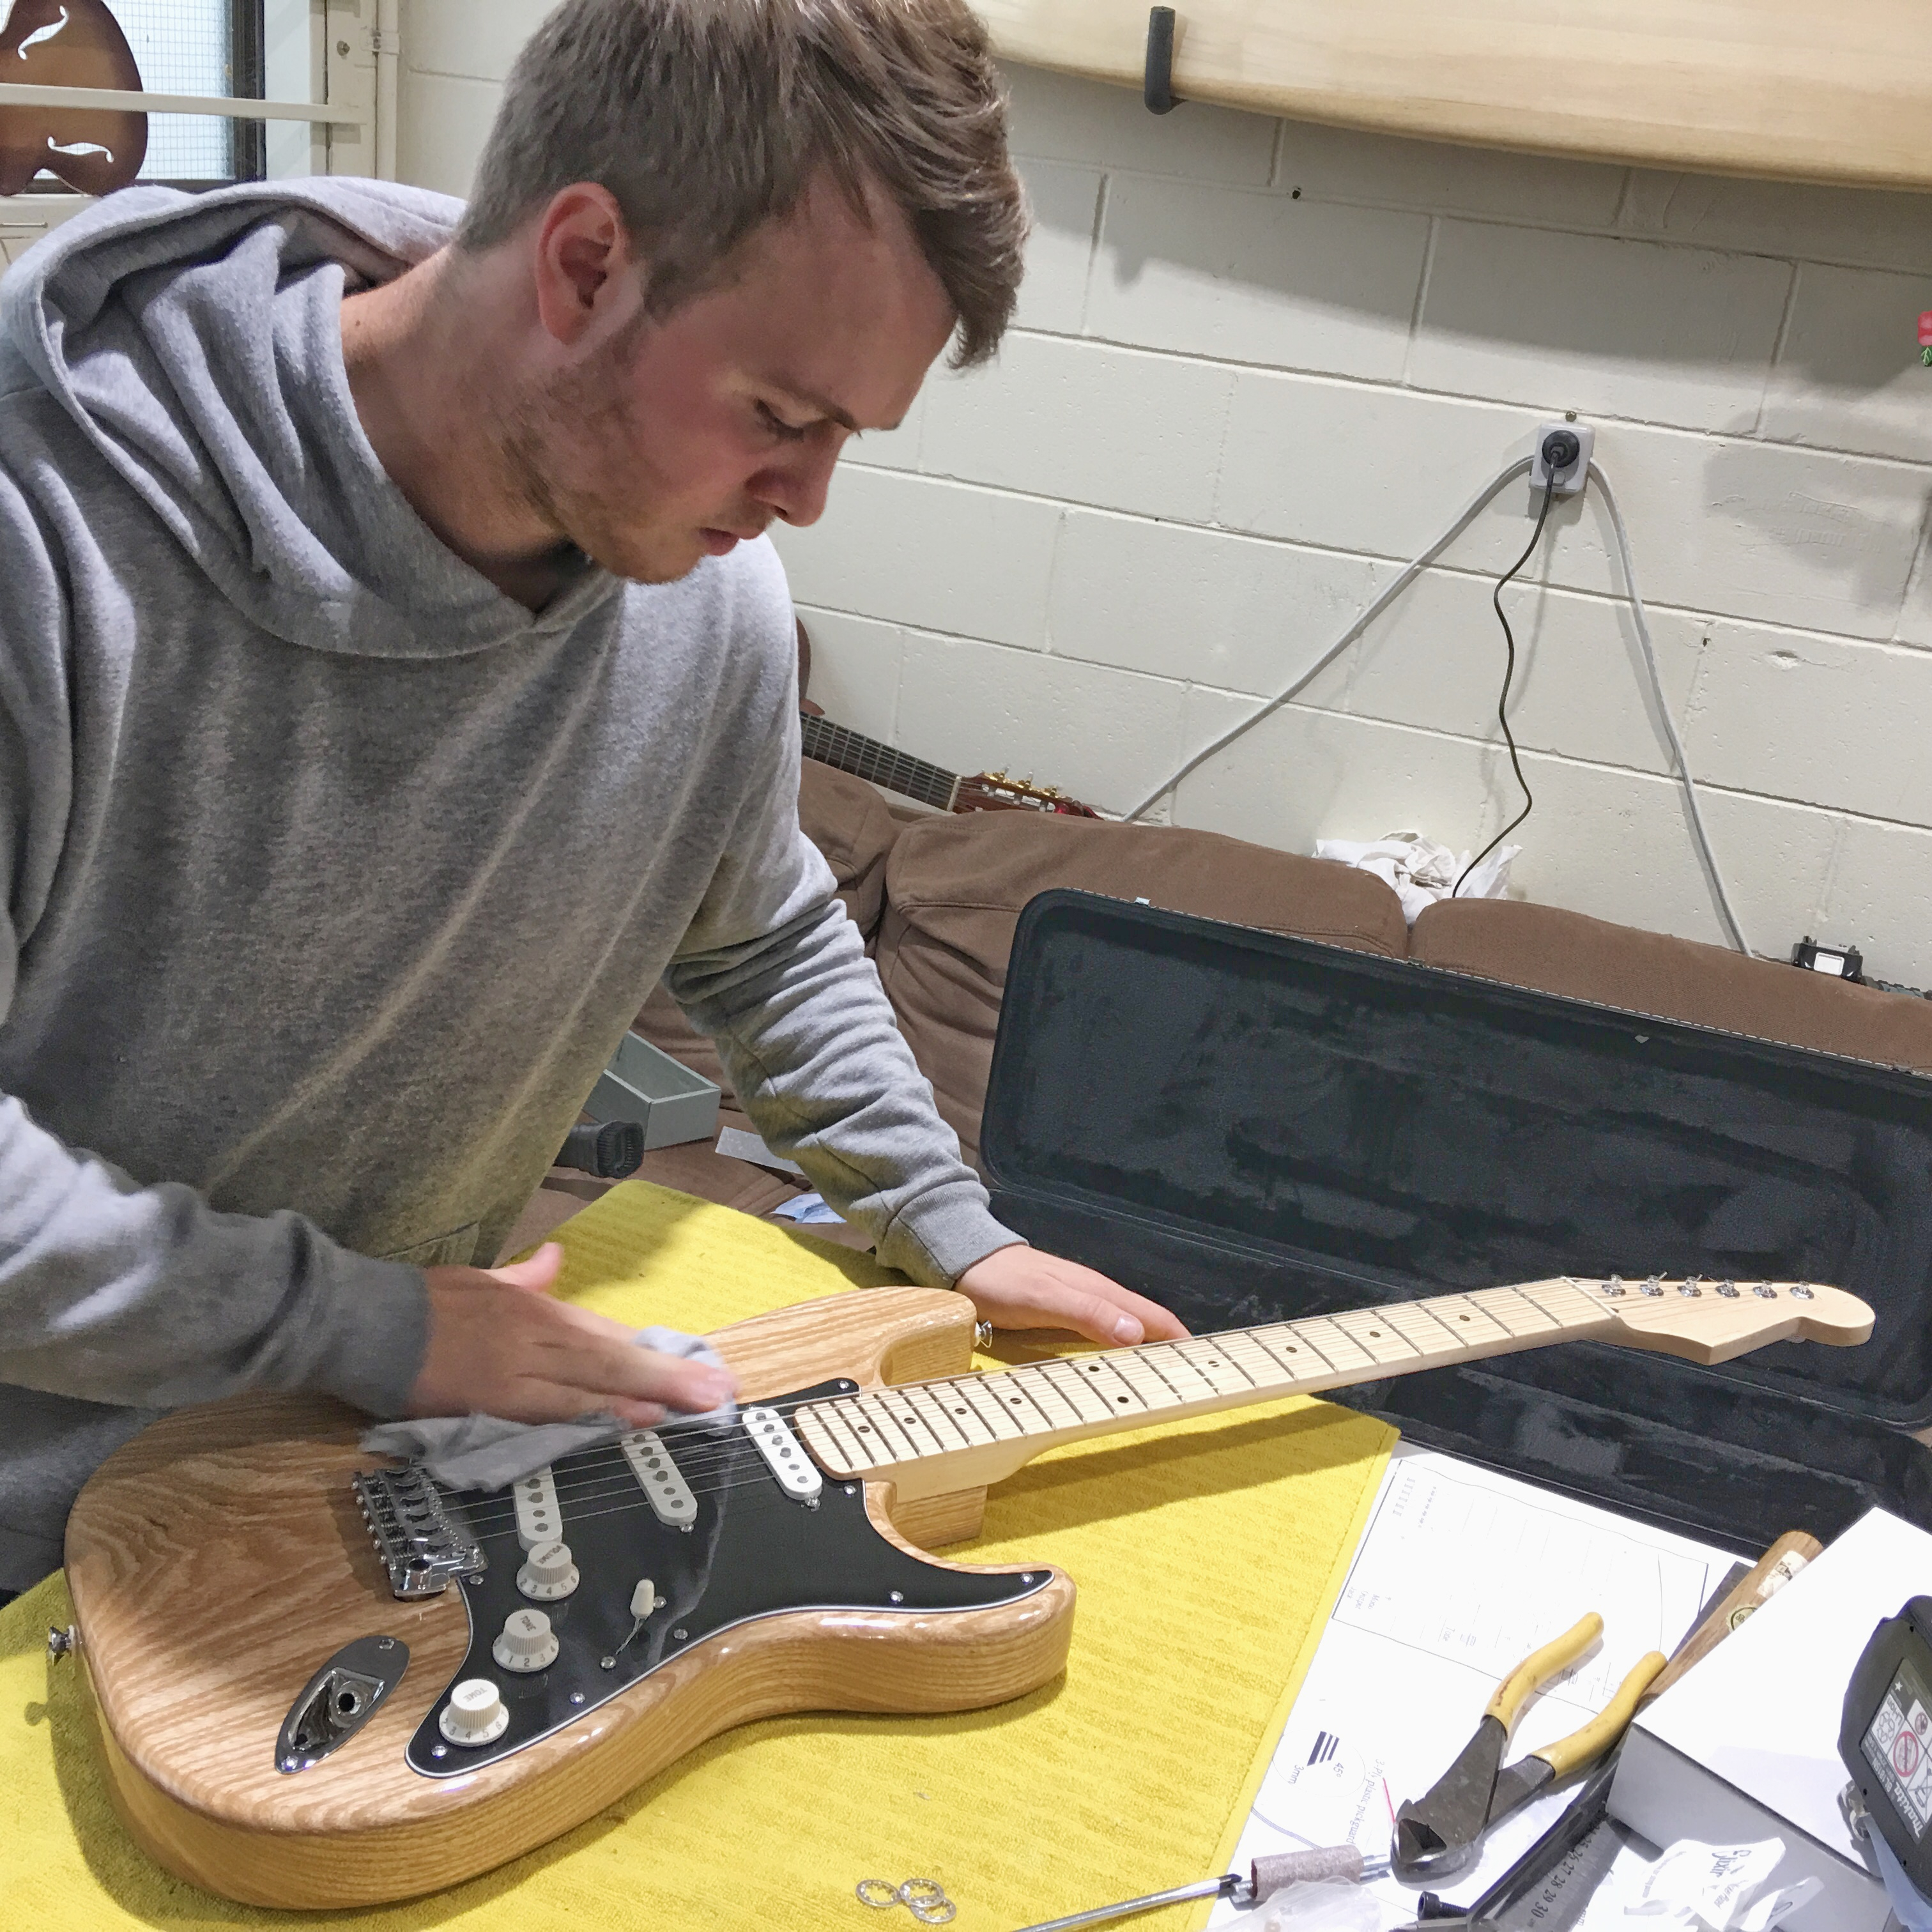 Jamie with his Strat-style electric guitar